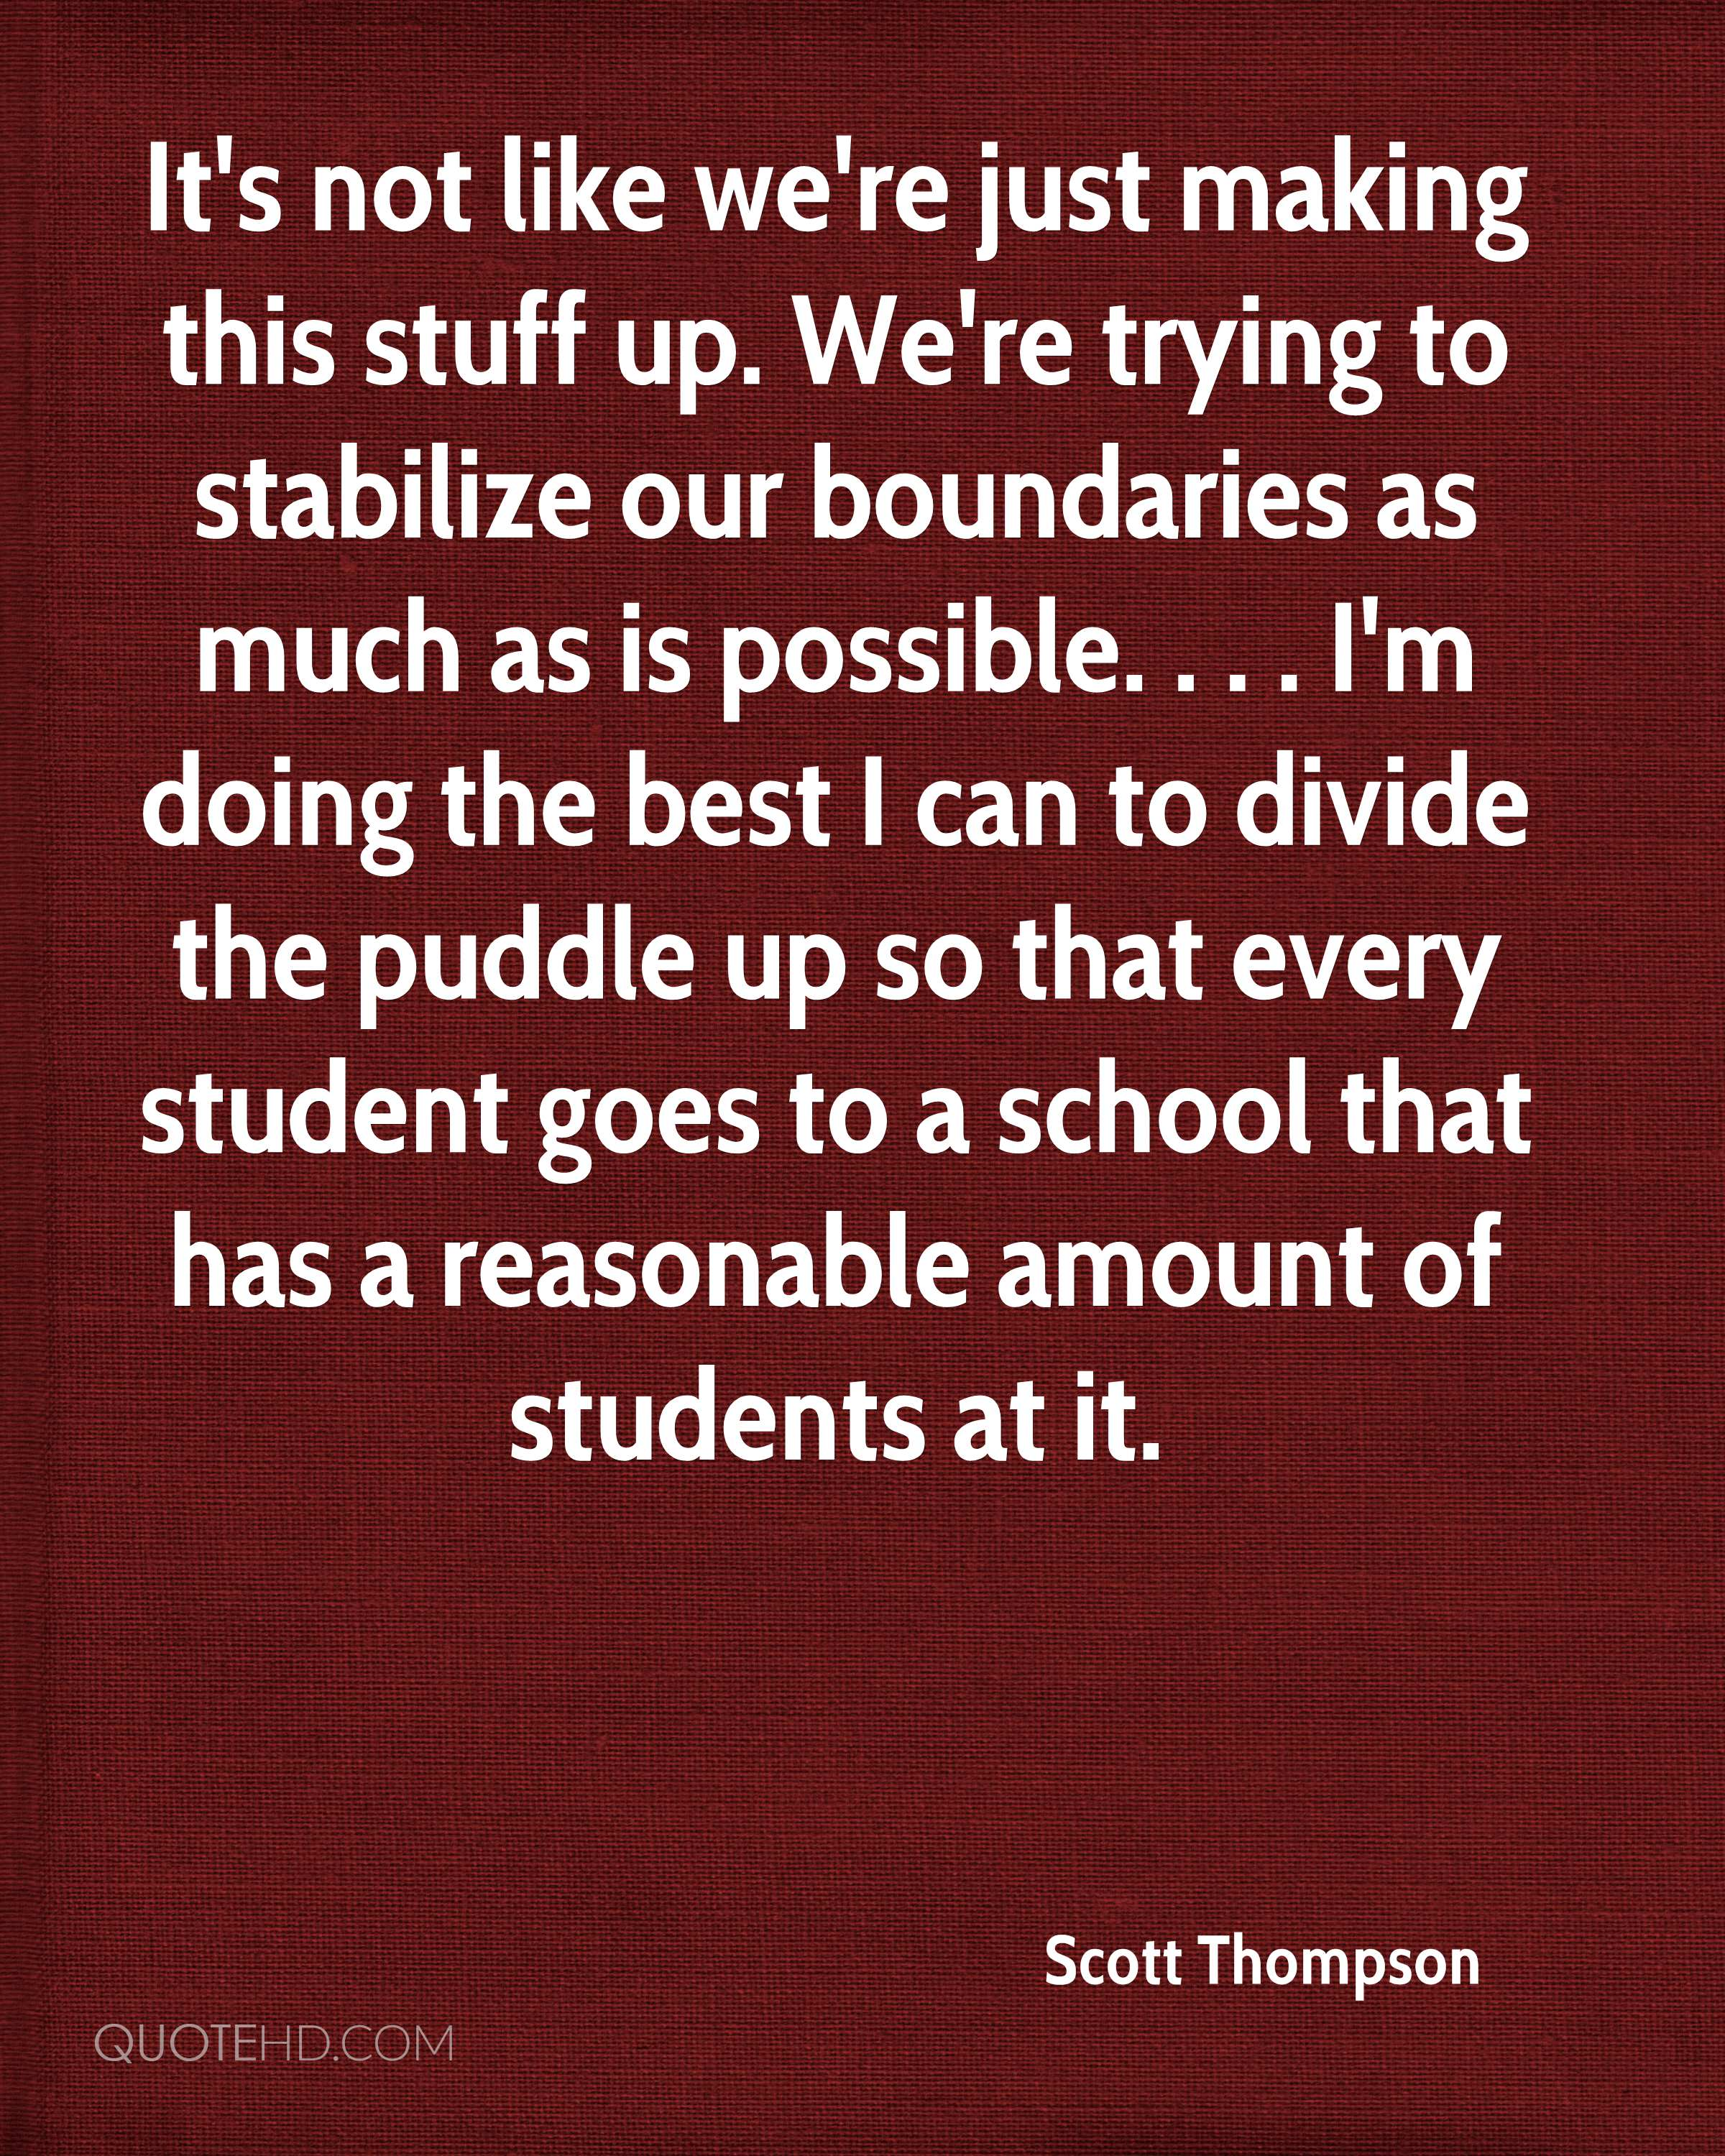 It's not like we're just making this stuff up. We're trying to stabilize our boundaries as much as is possible. . . . I'm doing the best I can to divide the puddle up so that every student goes to a school that has a reasonable amount of students at it.